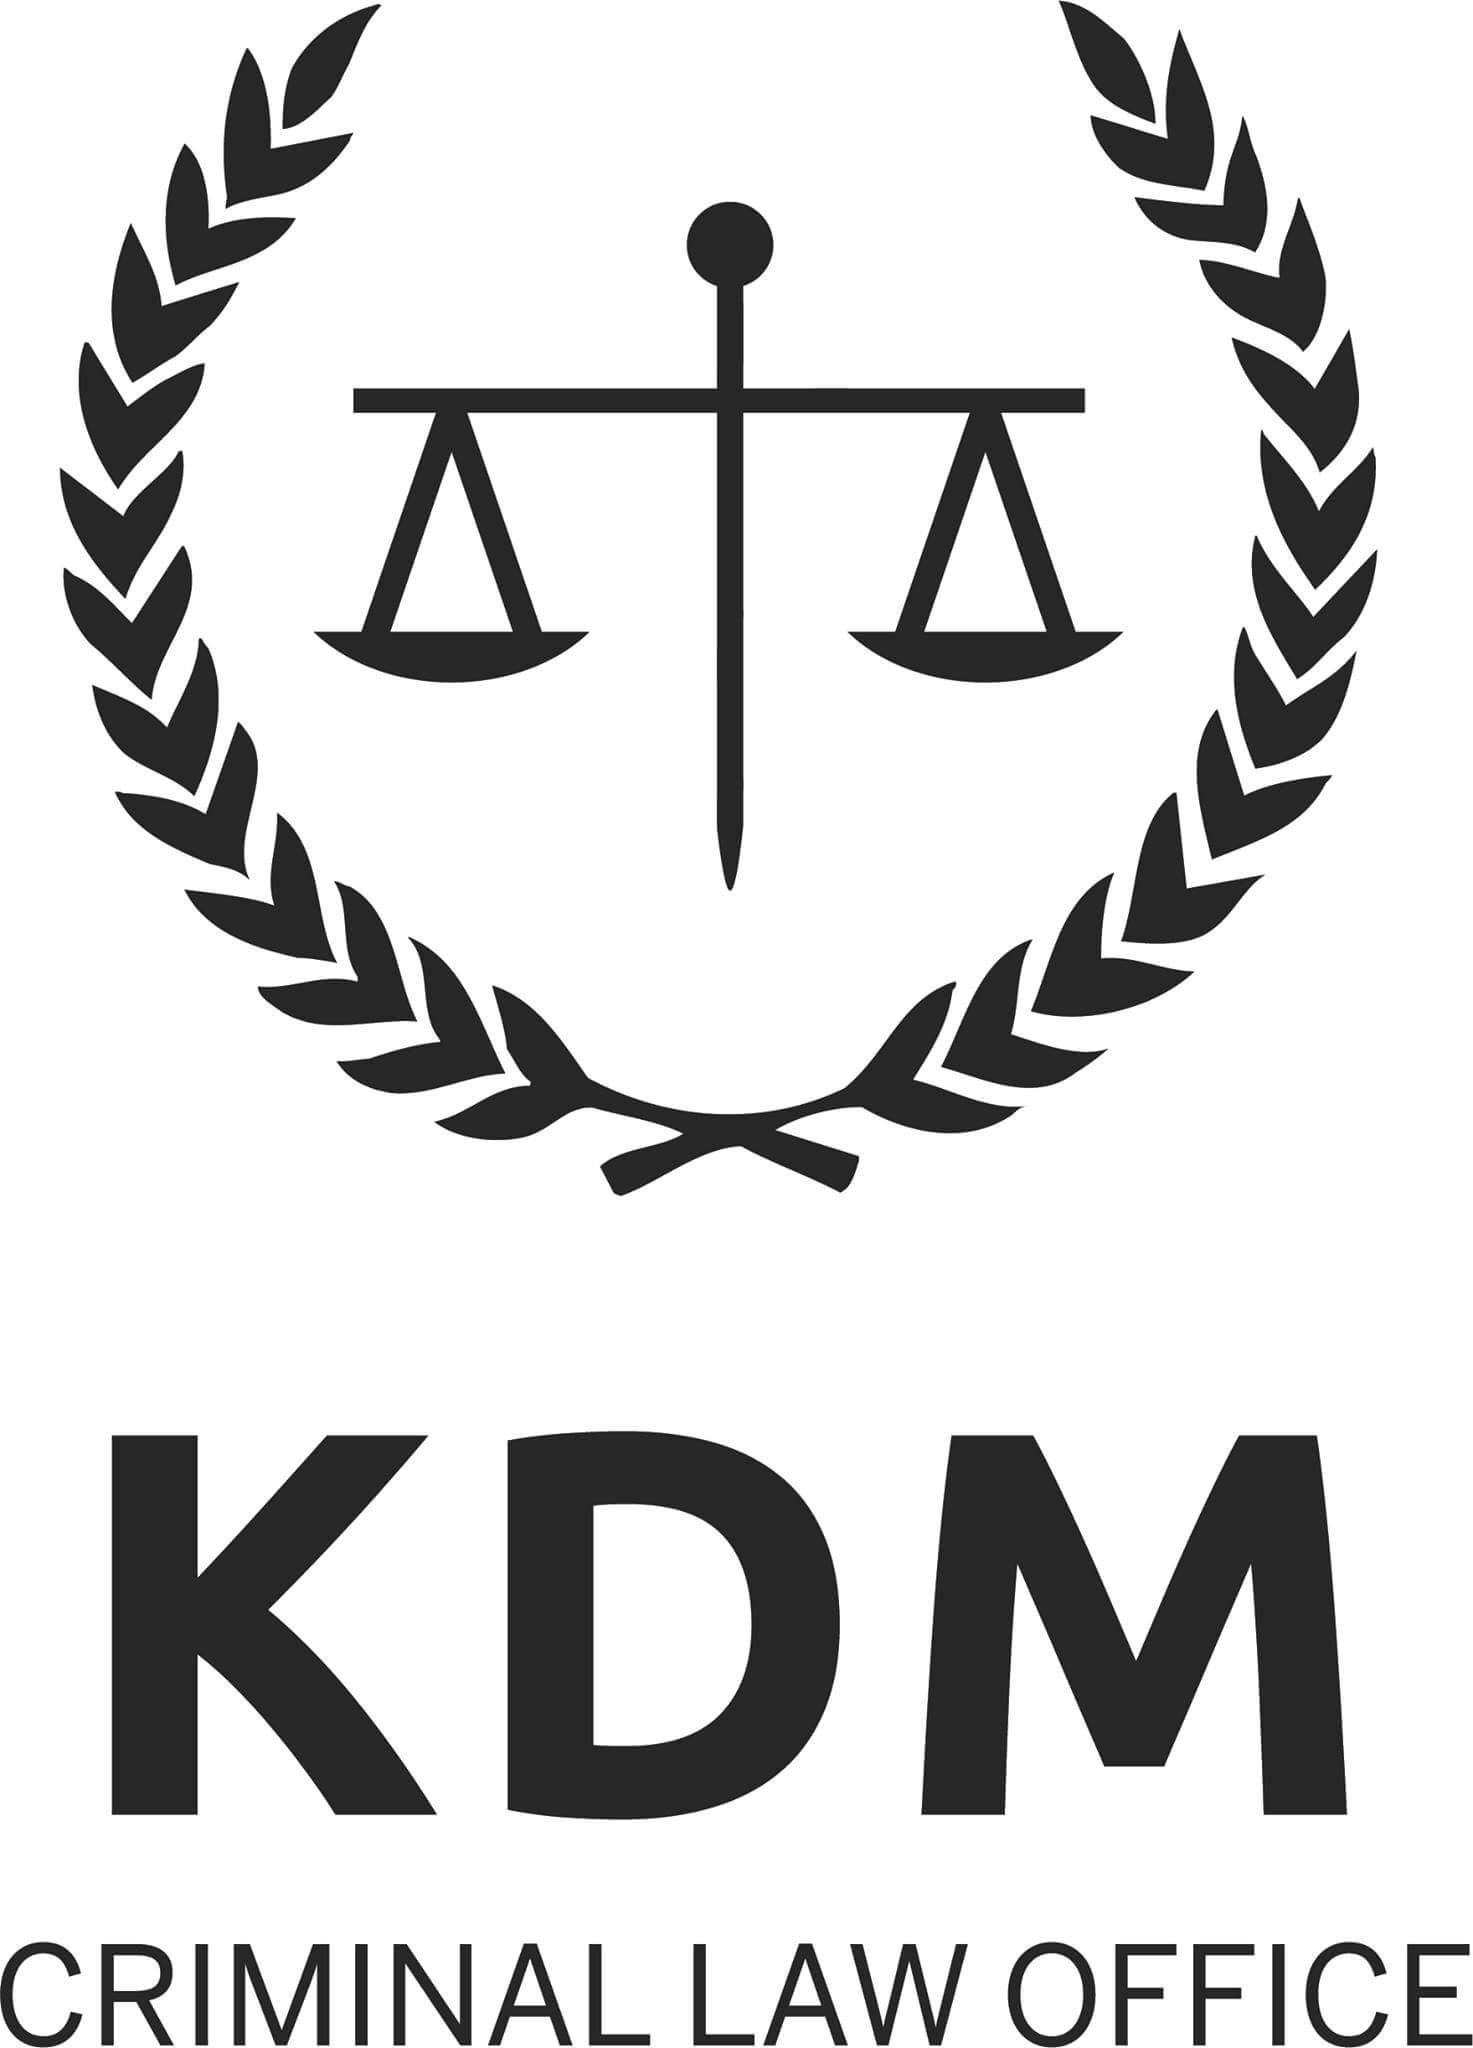 Kdm criminal law office logo 2018 the criminal lawyers for Office logo